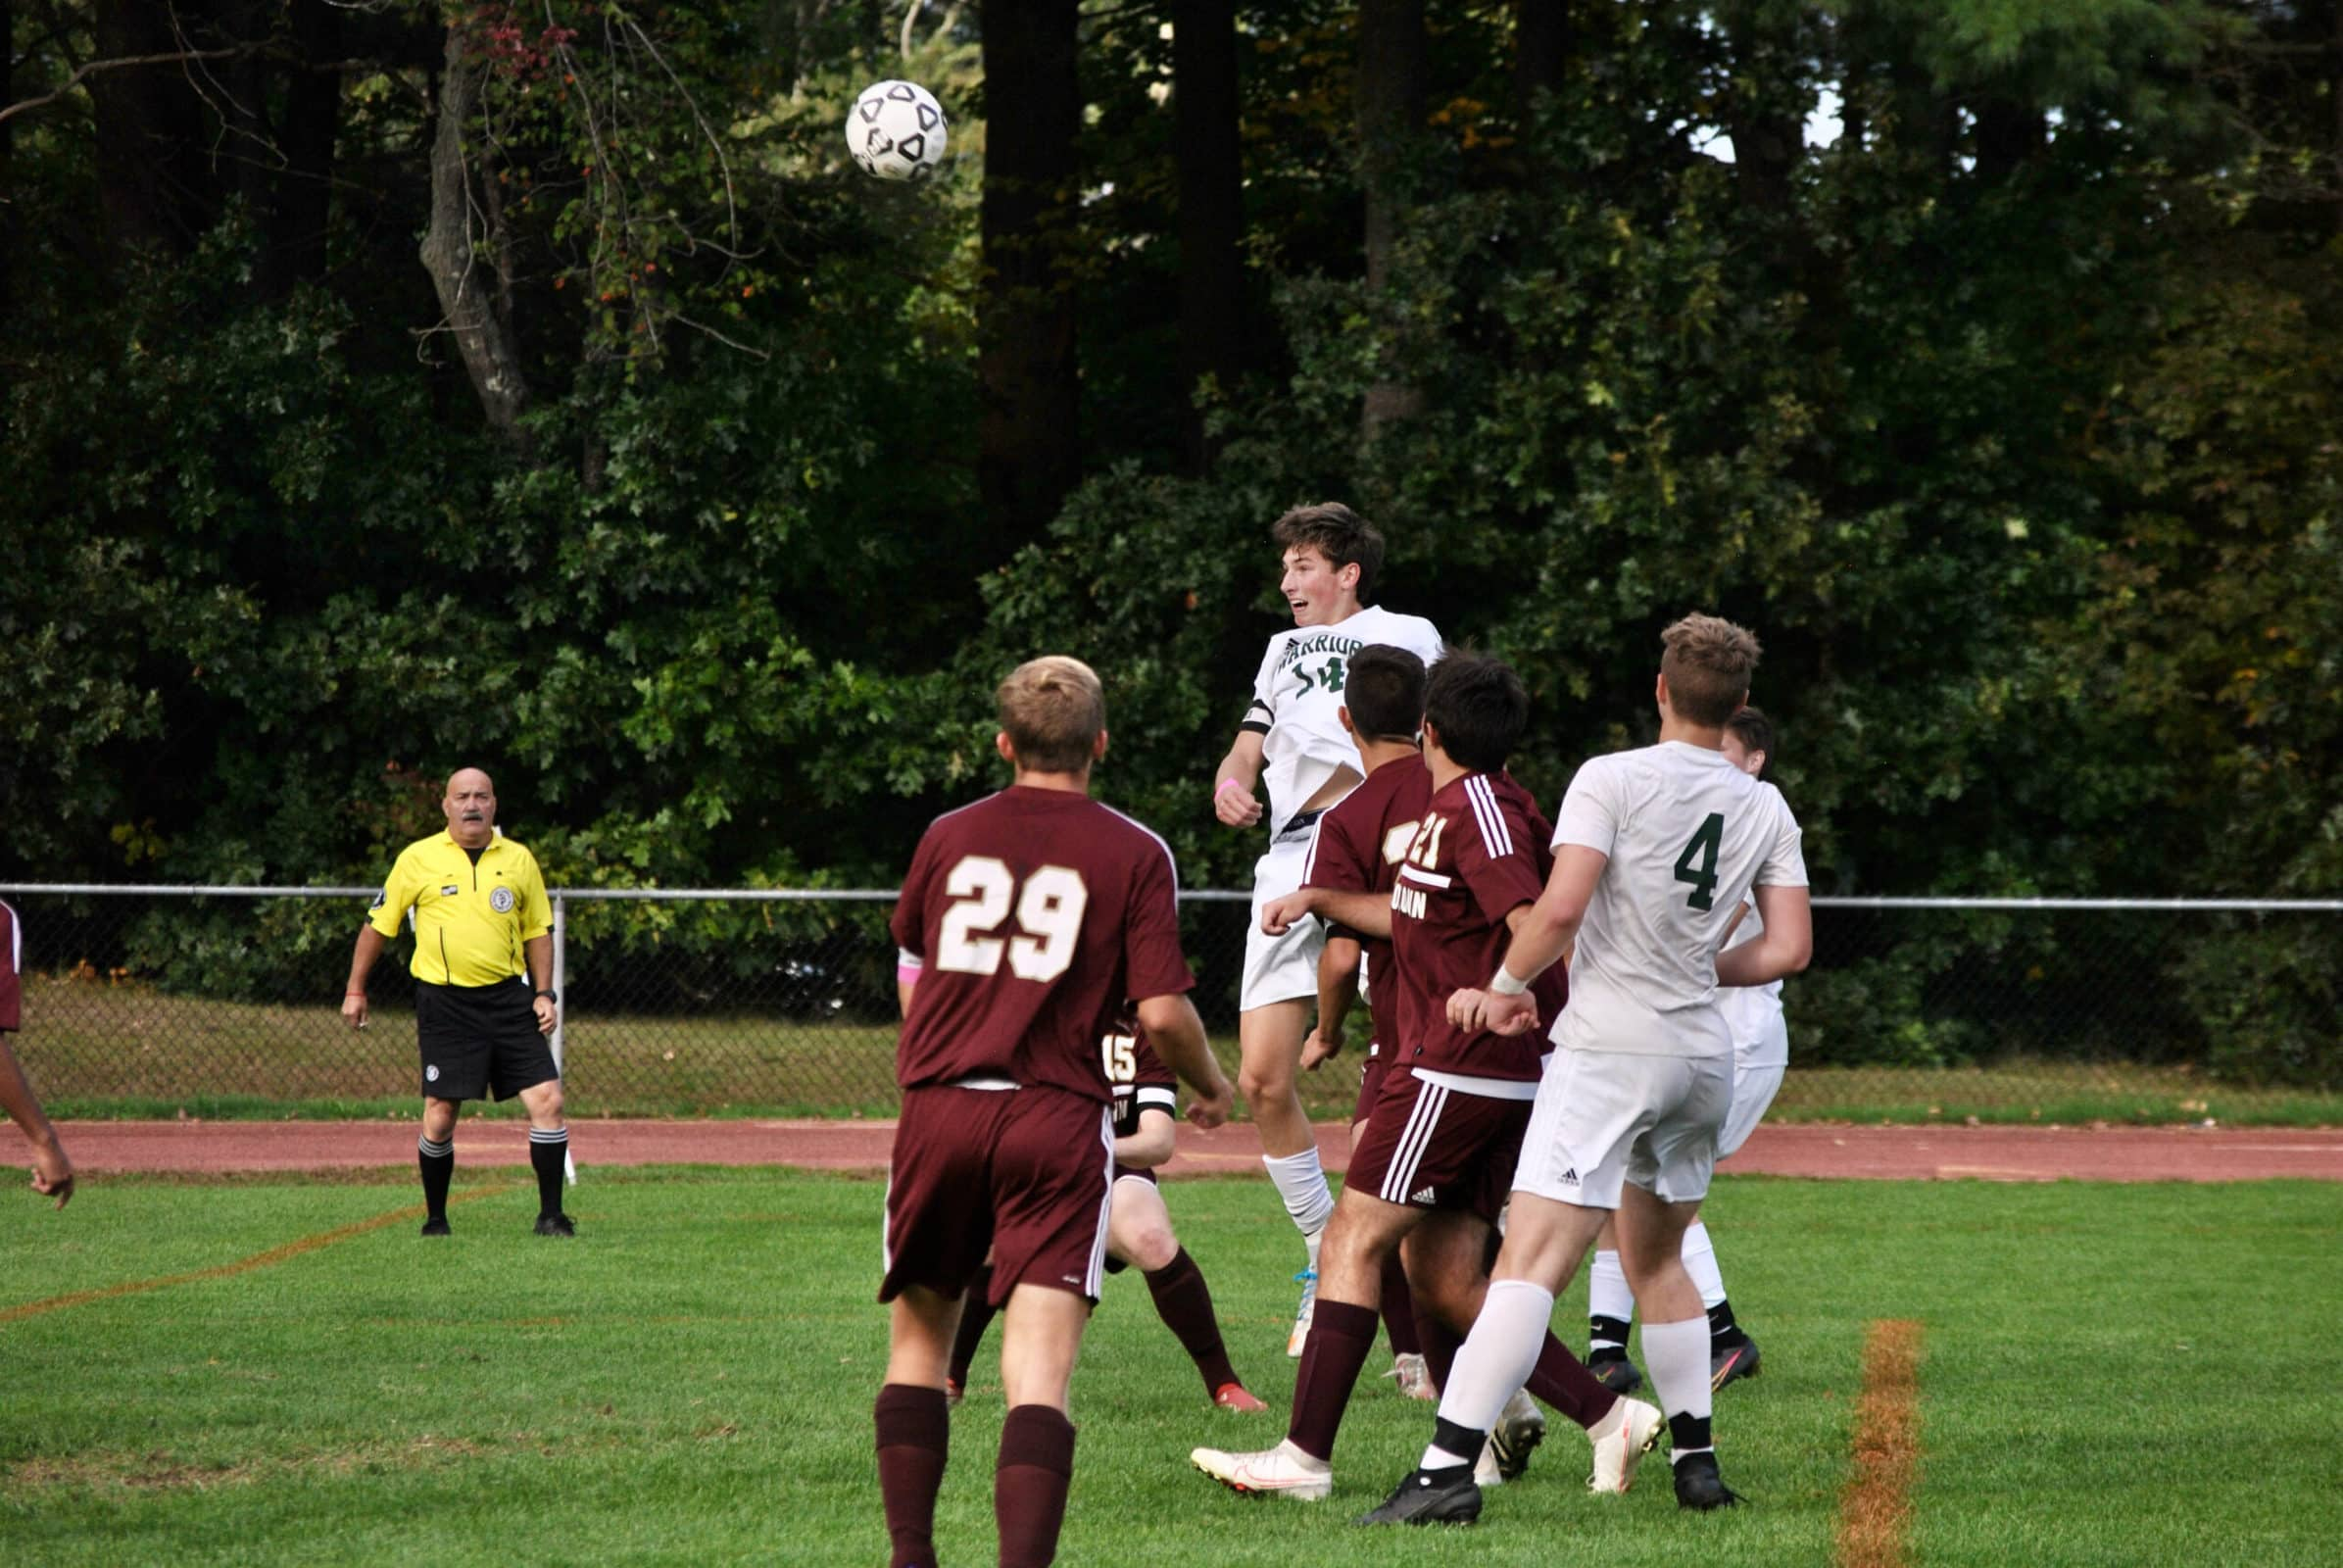 A Tantasqua player rises above Algonquin opponents to win a header towards the Algonquin goal.